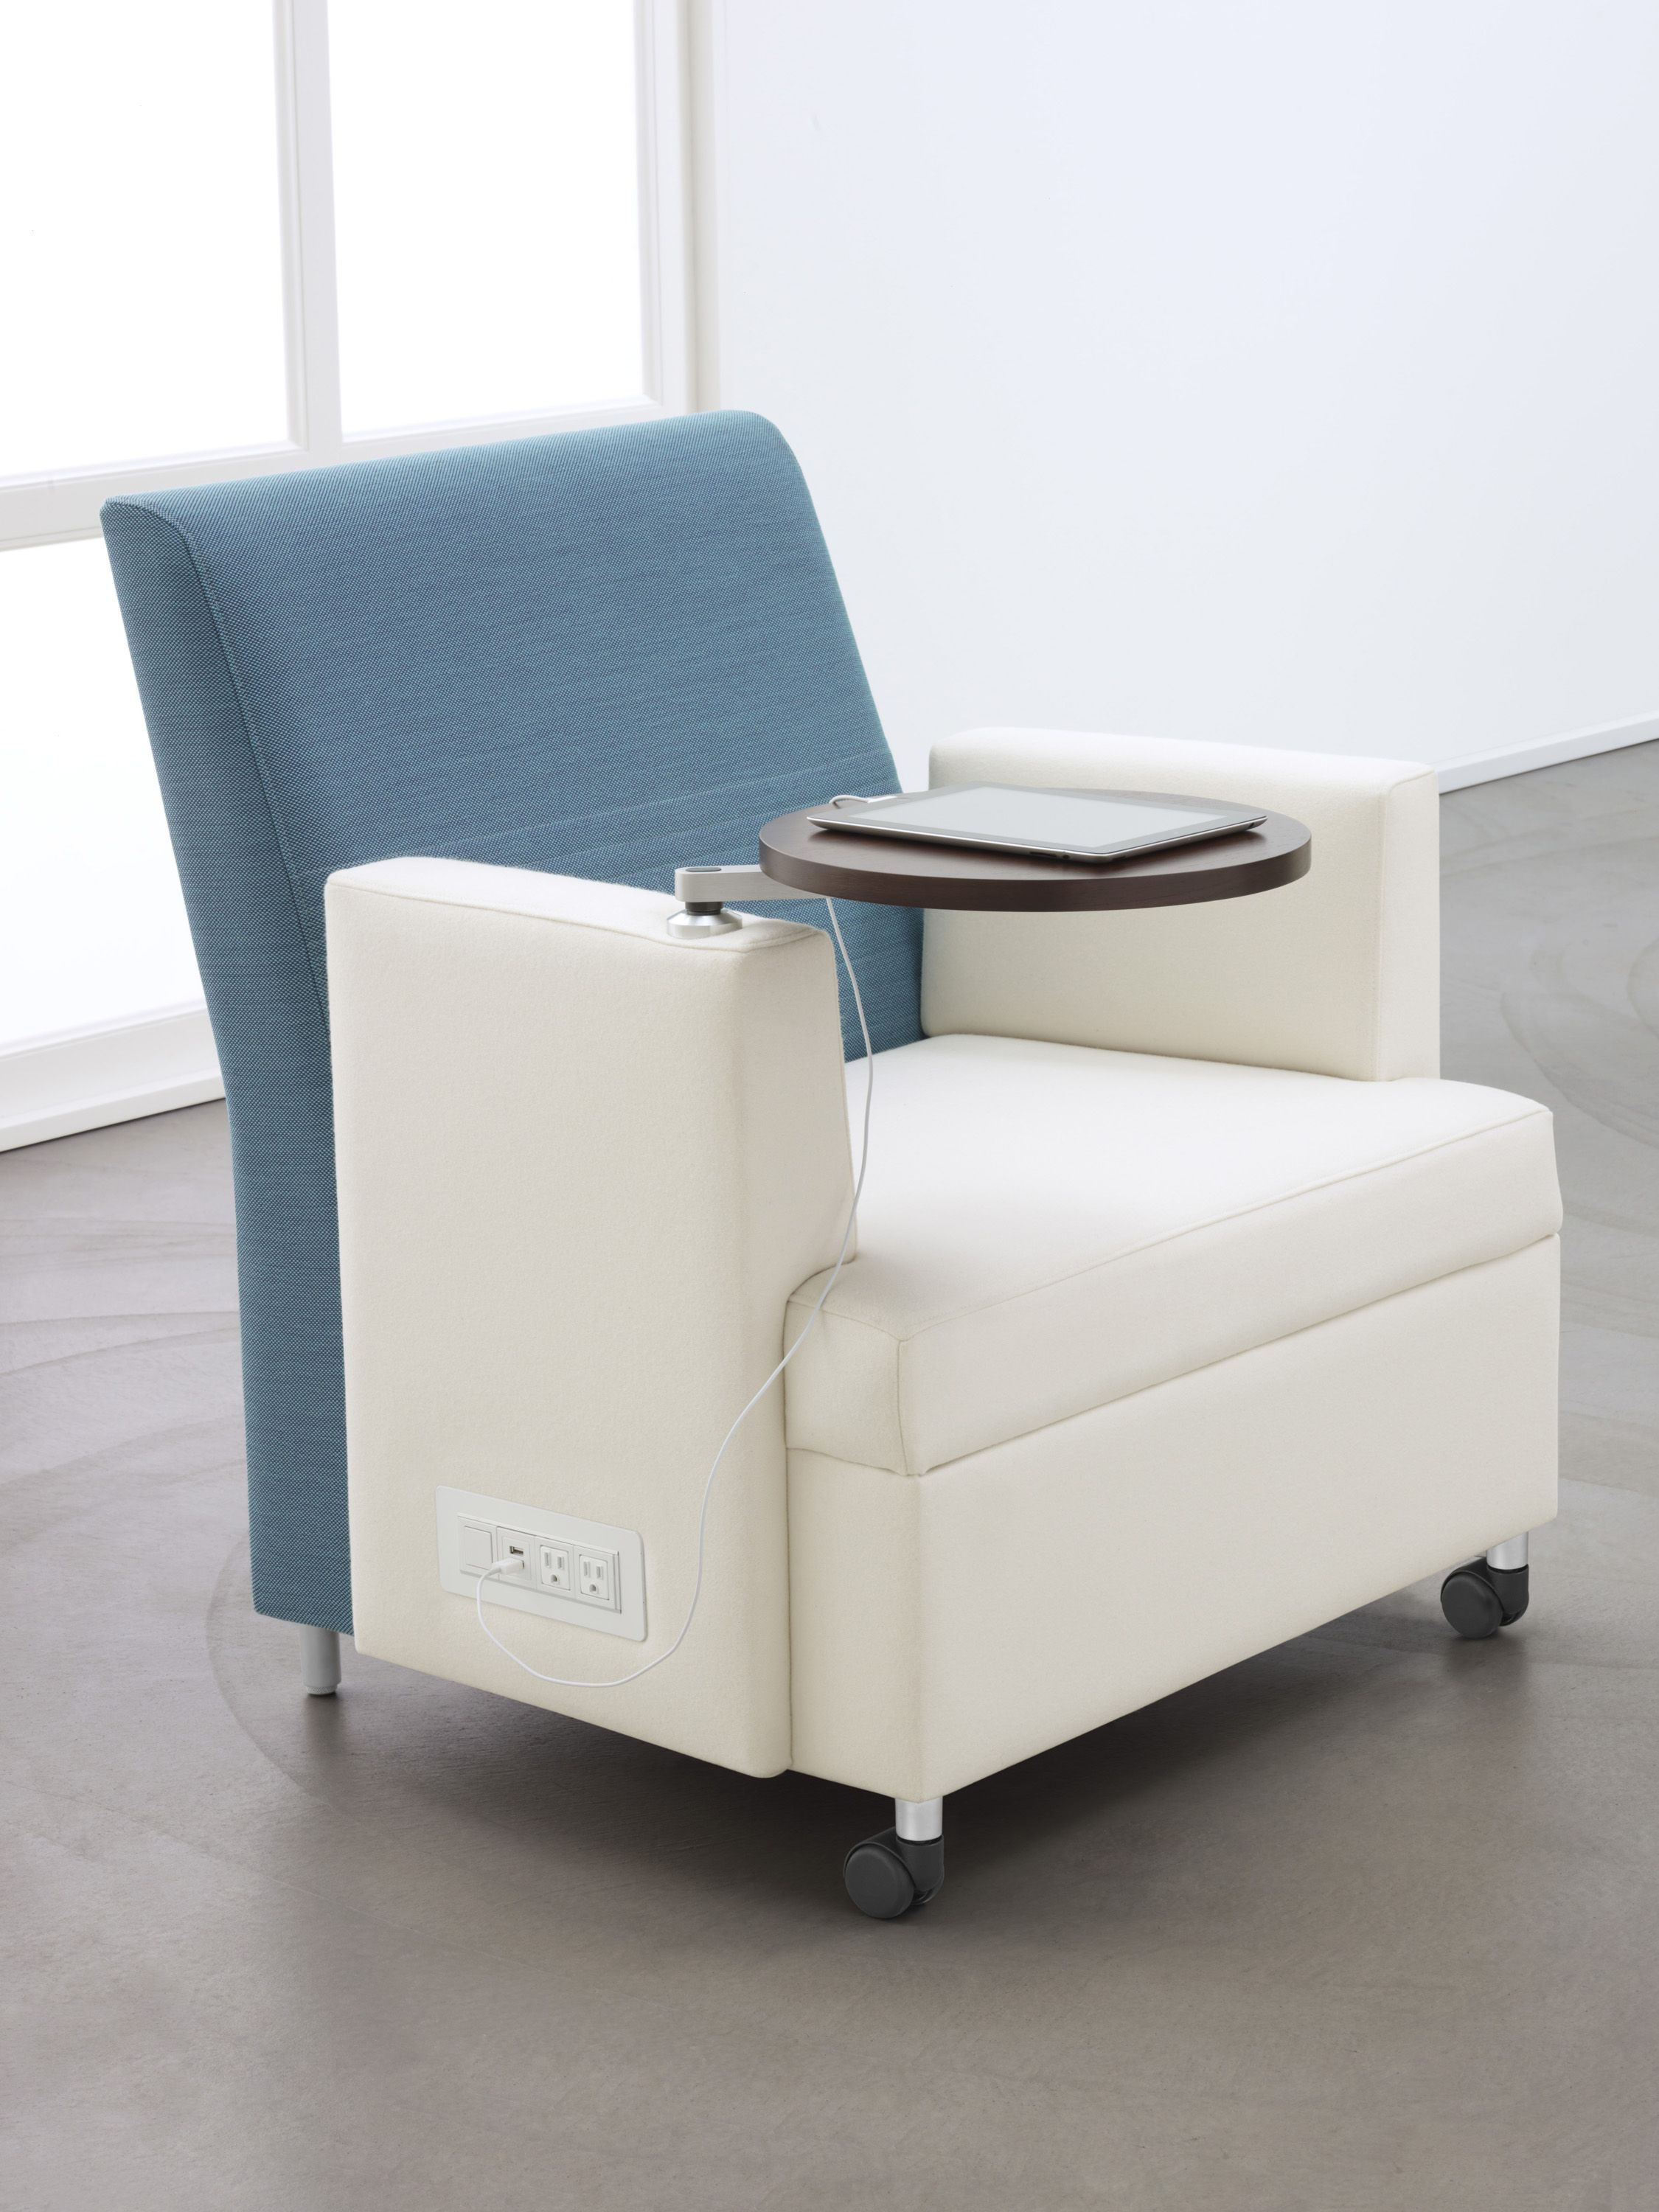 Interesting Furniture That Has USB Power And AC Power. High Back Ideas